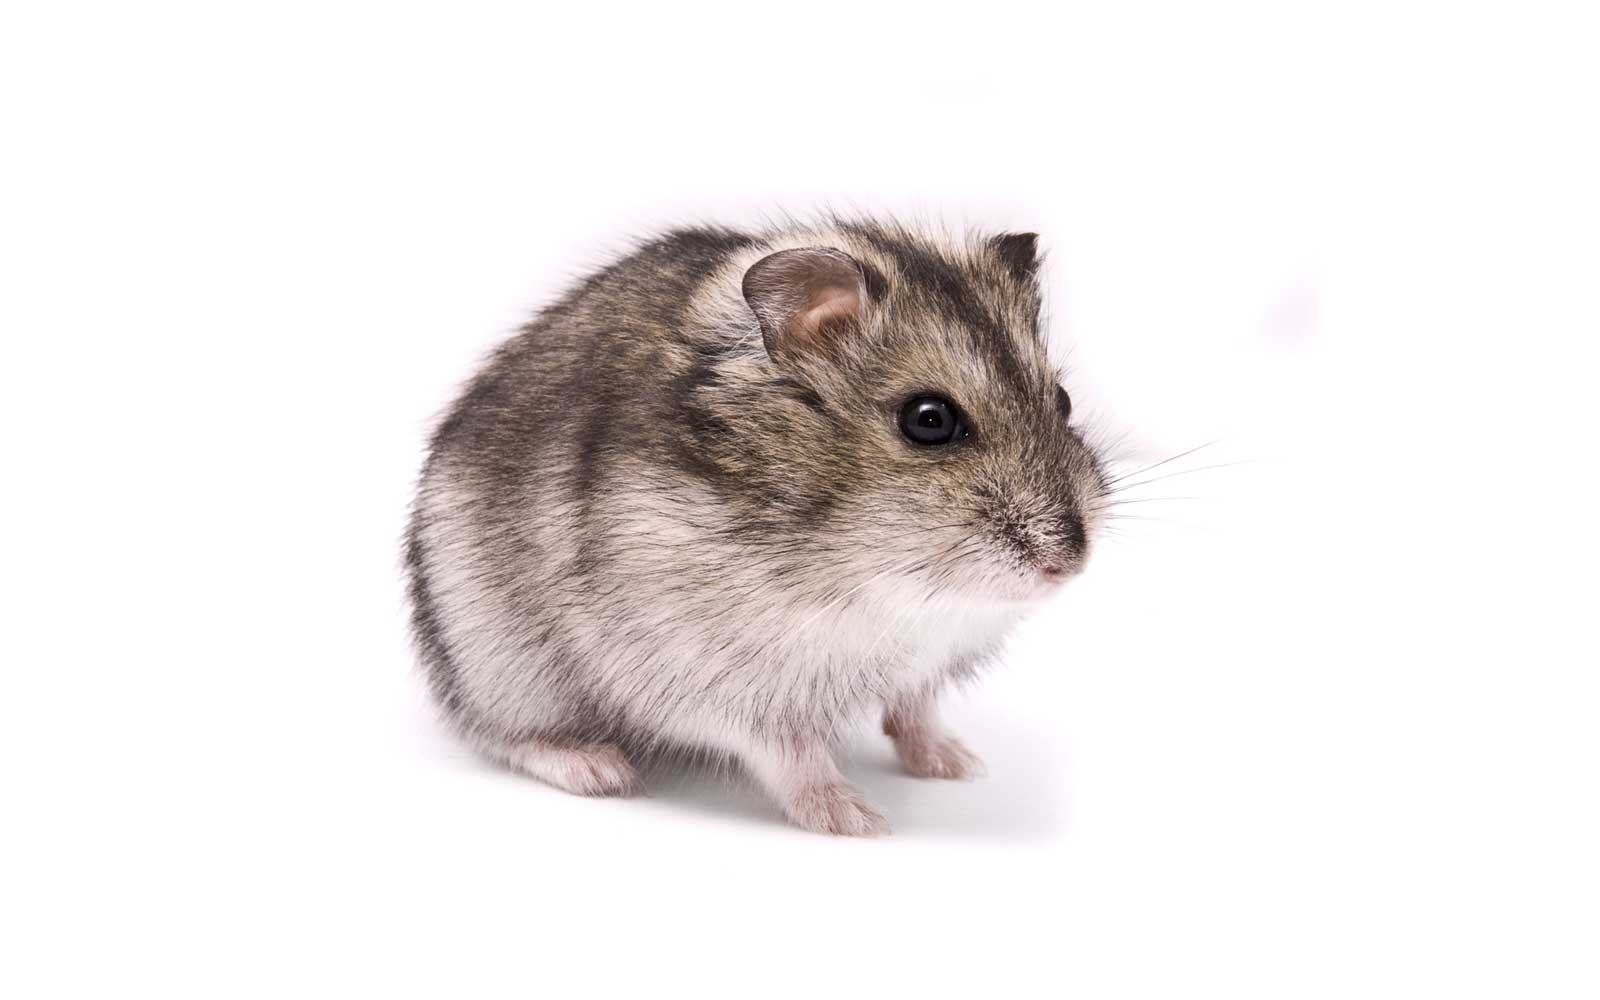 Student Claims Spirit Airlines Agent Pressured Her to Flush Her Emotional Support Hamster Down The Toilet